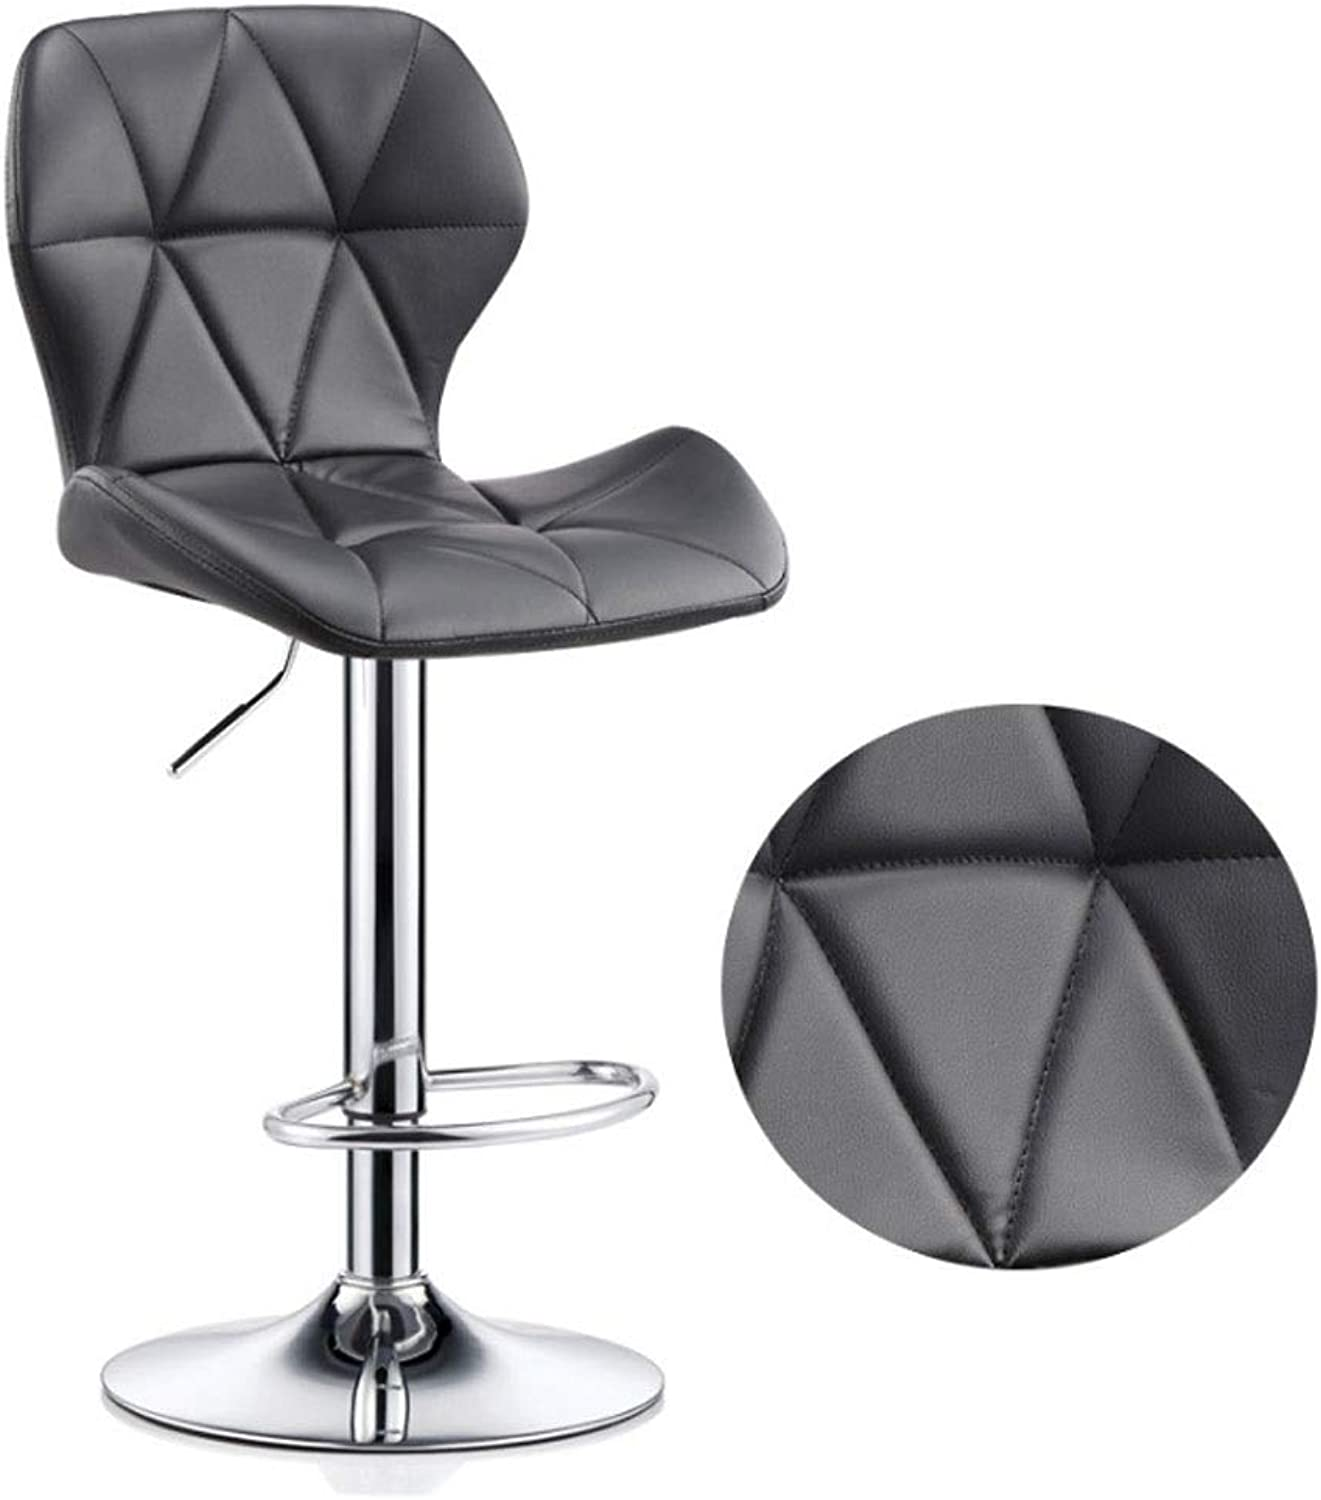 Bar stools Bar Stools Set with Backrest, Leatherette Exterior, Adjustable Swivel Gas Lift, Chrome Footrest and Base for Breakfast Bar Height Chair (color   Black, Size   40-55CM)